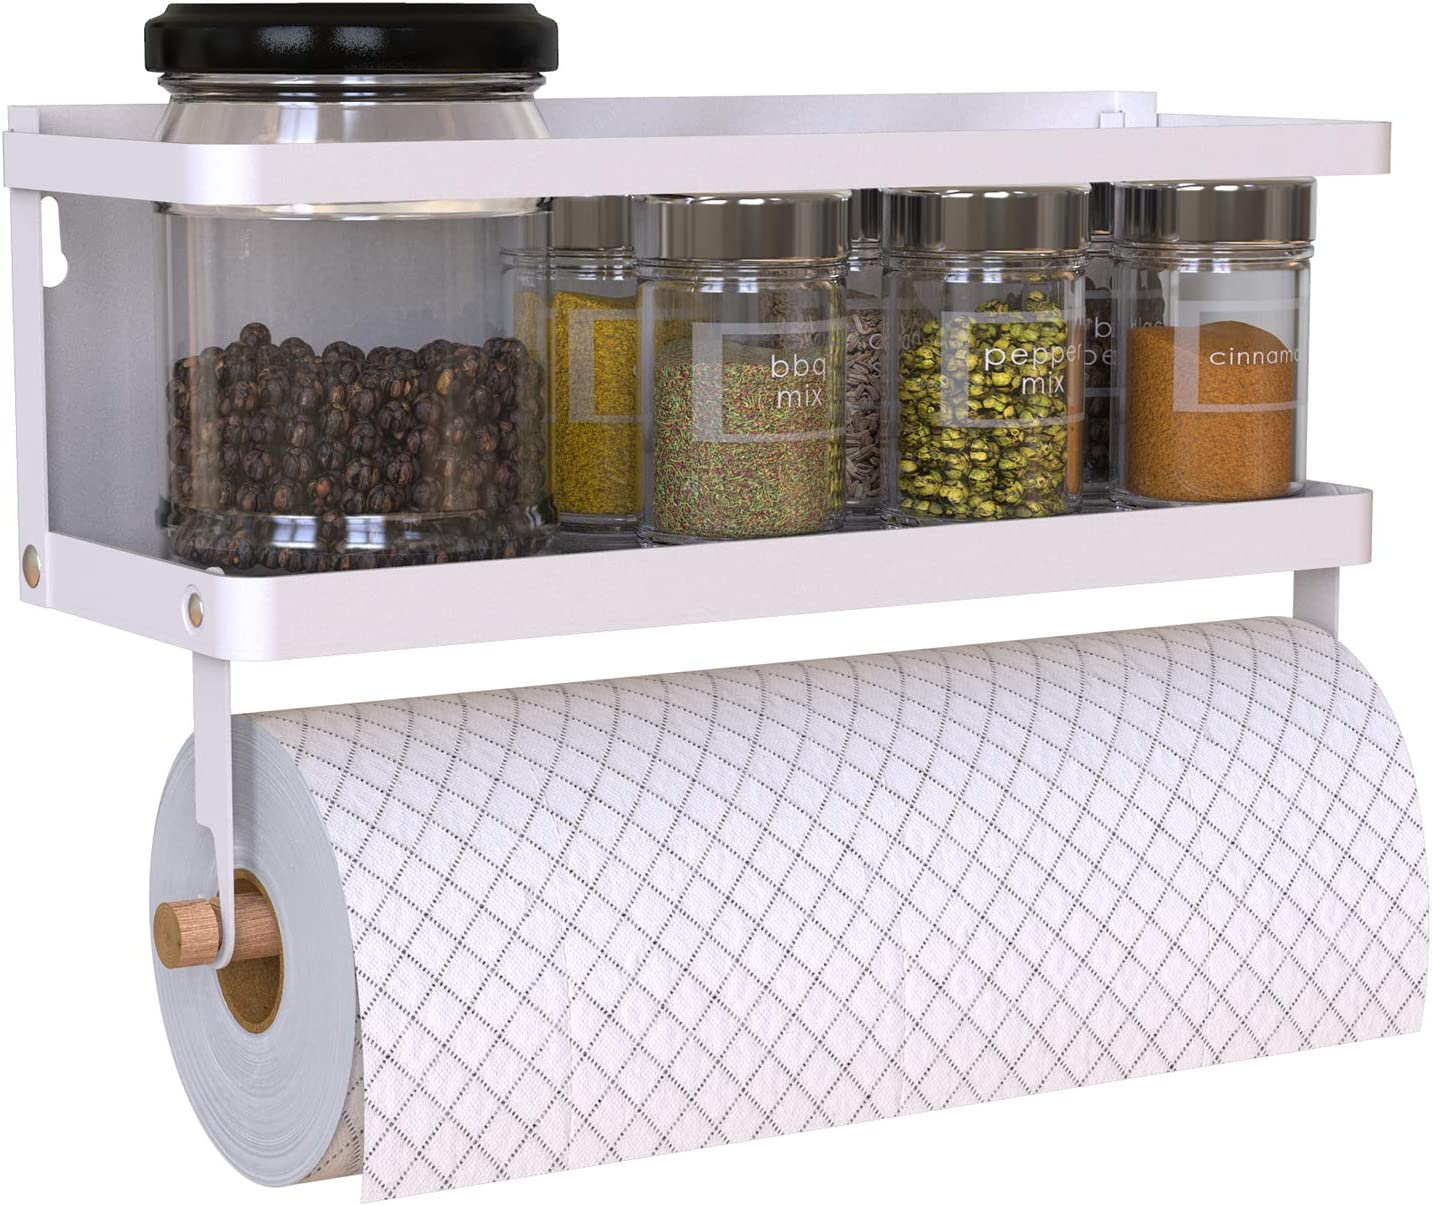 Magnetic Spice Rack Organizer Single Tier Refrigerator Spice Storage Shelf, Easy to Install The Side of The Refrigerator Can Hold spices, Jar of Olive Oil (White, With hook)